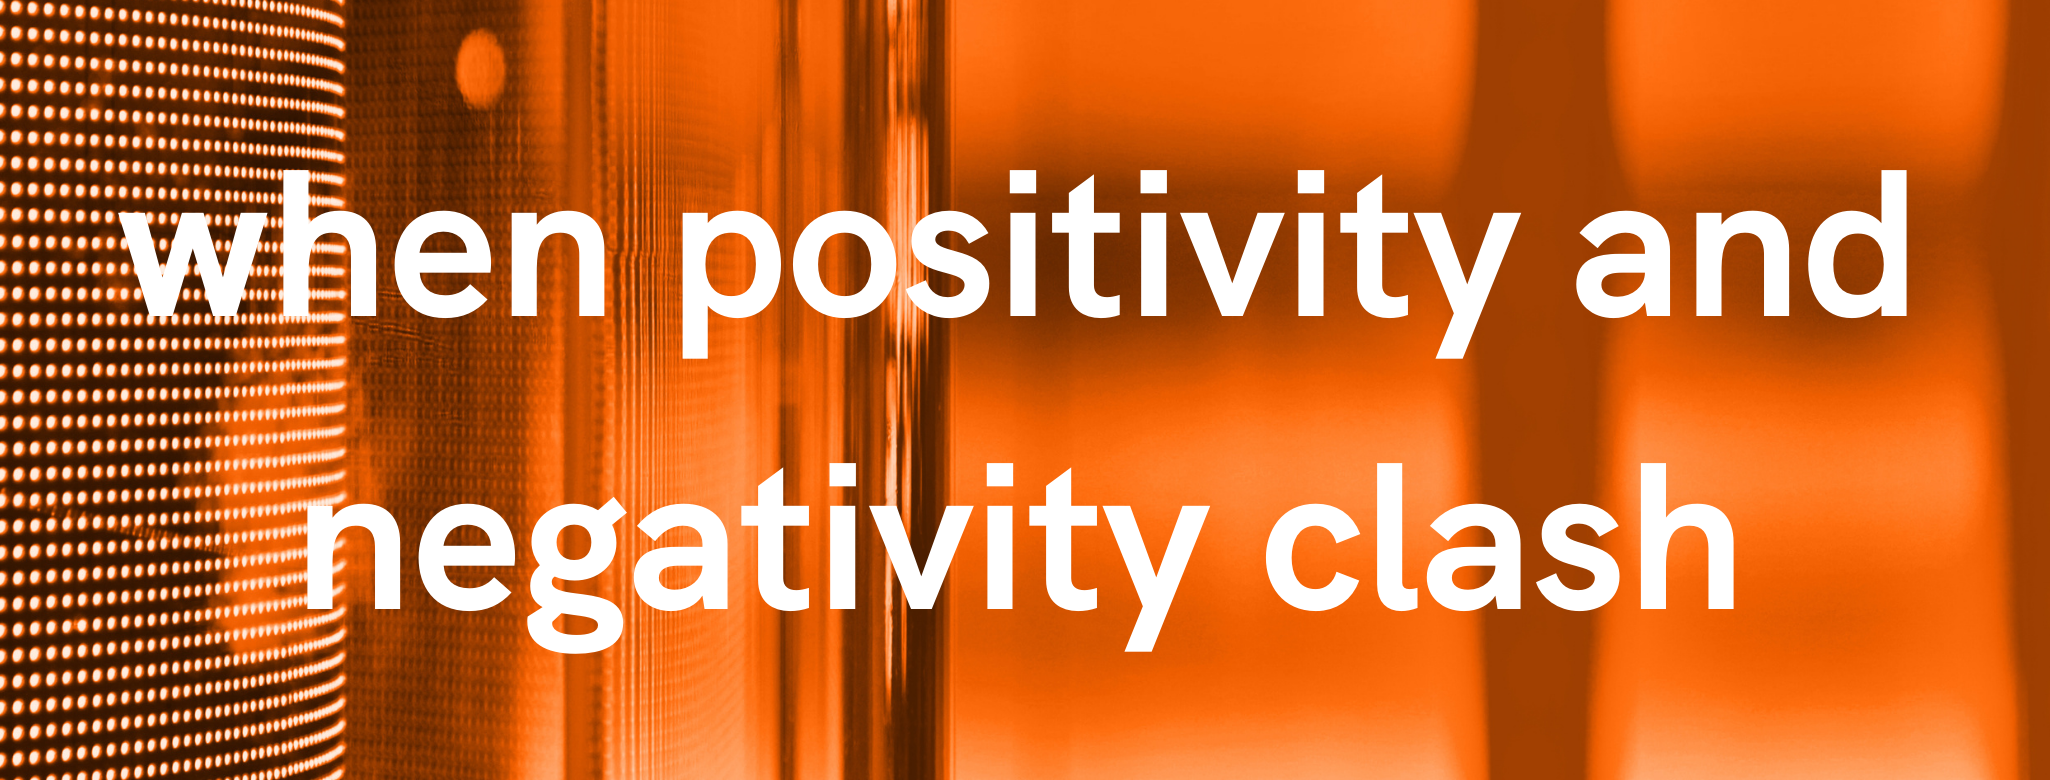 When positivity meets negativity- what happens! Read more here...